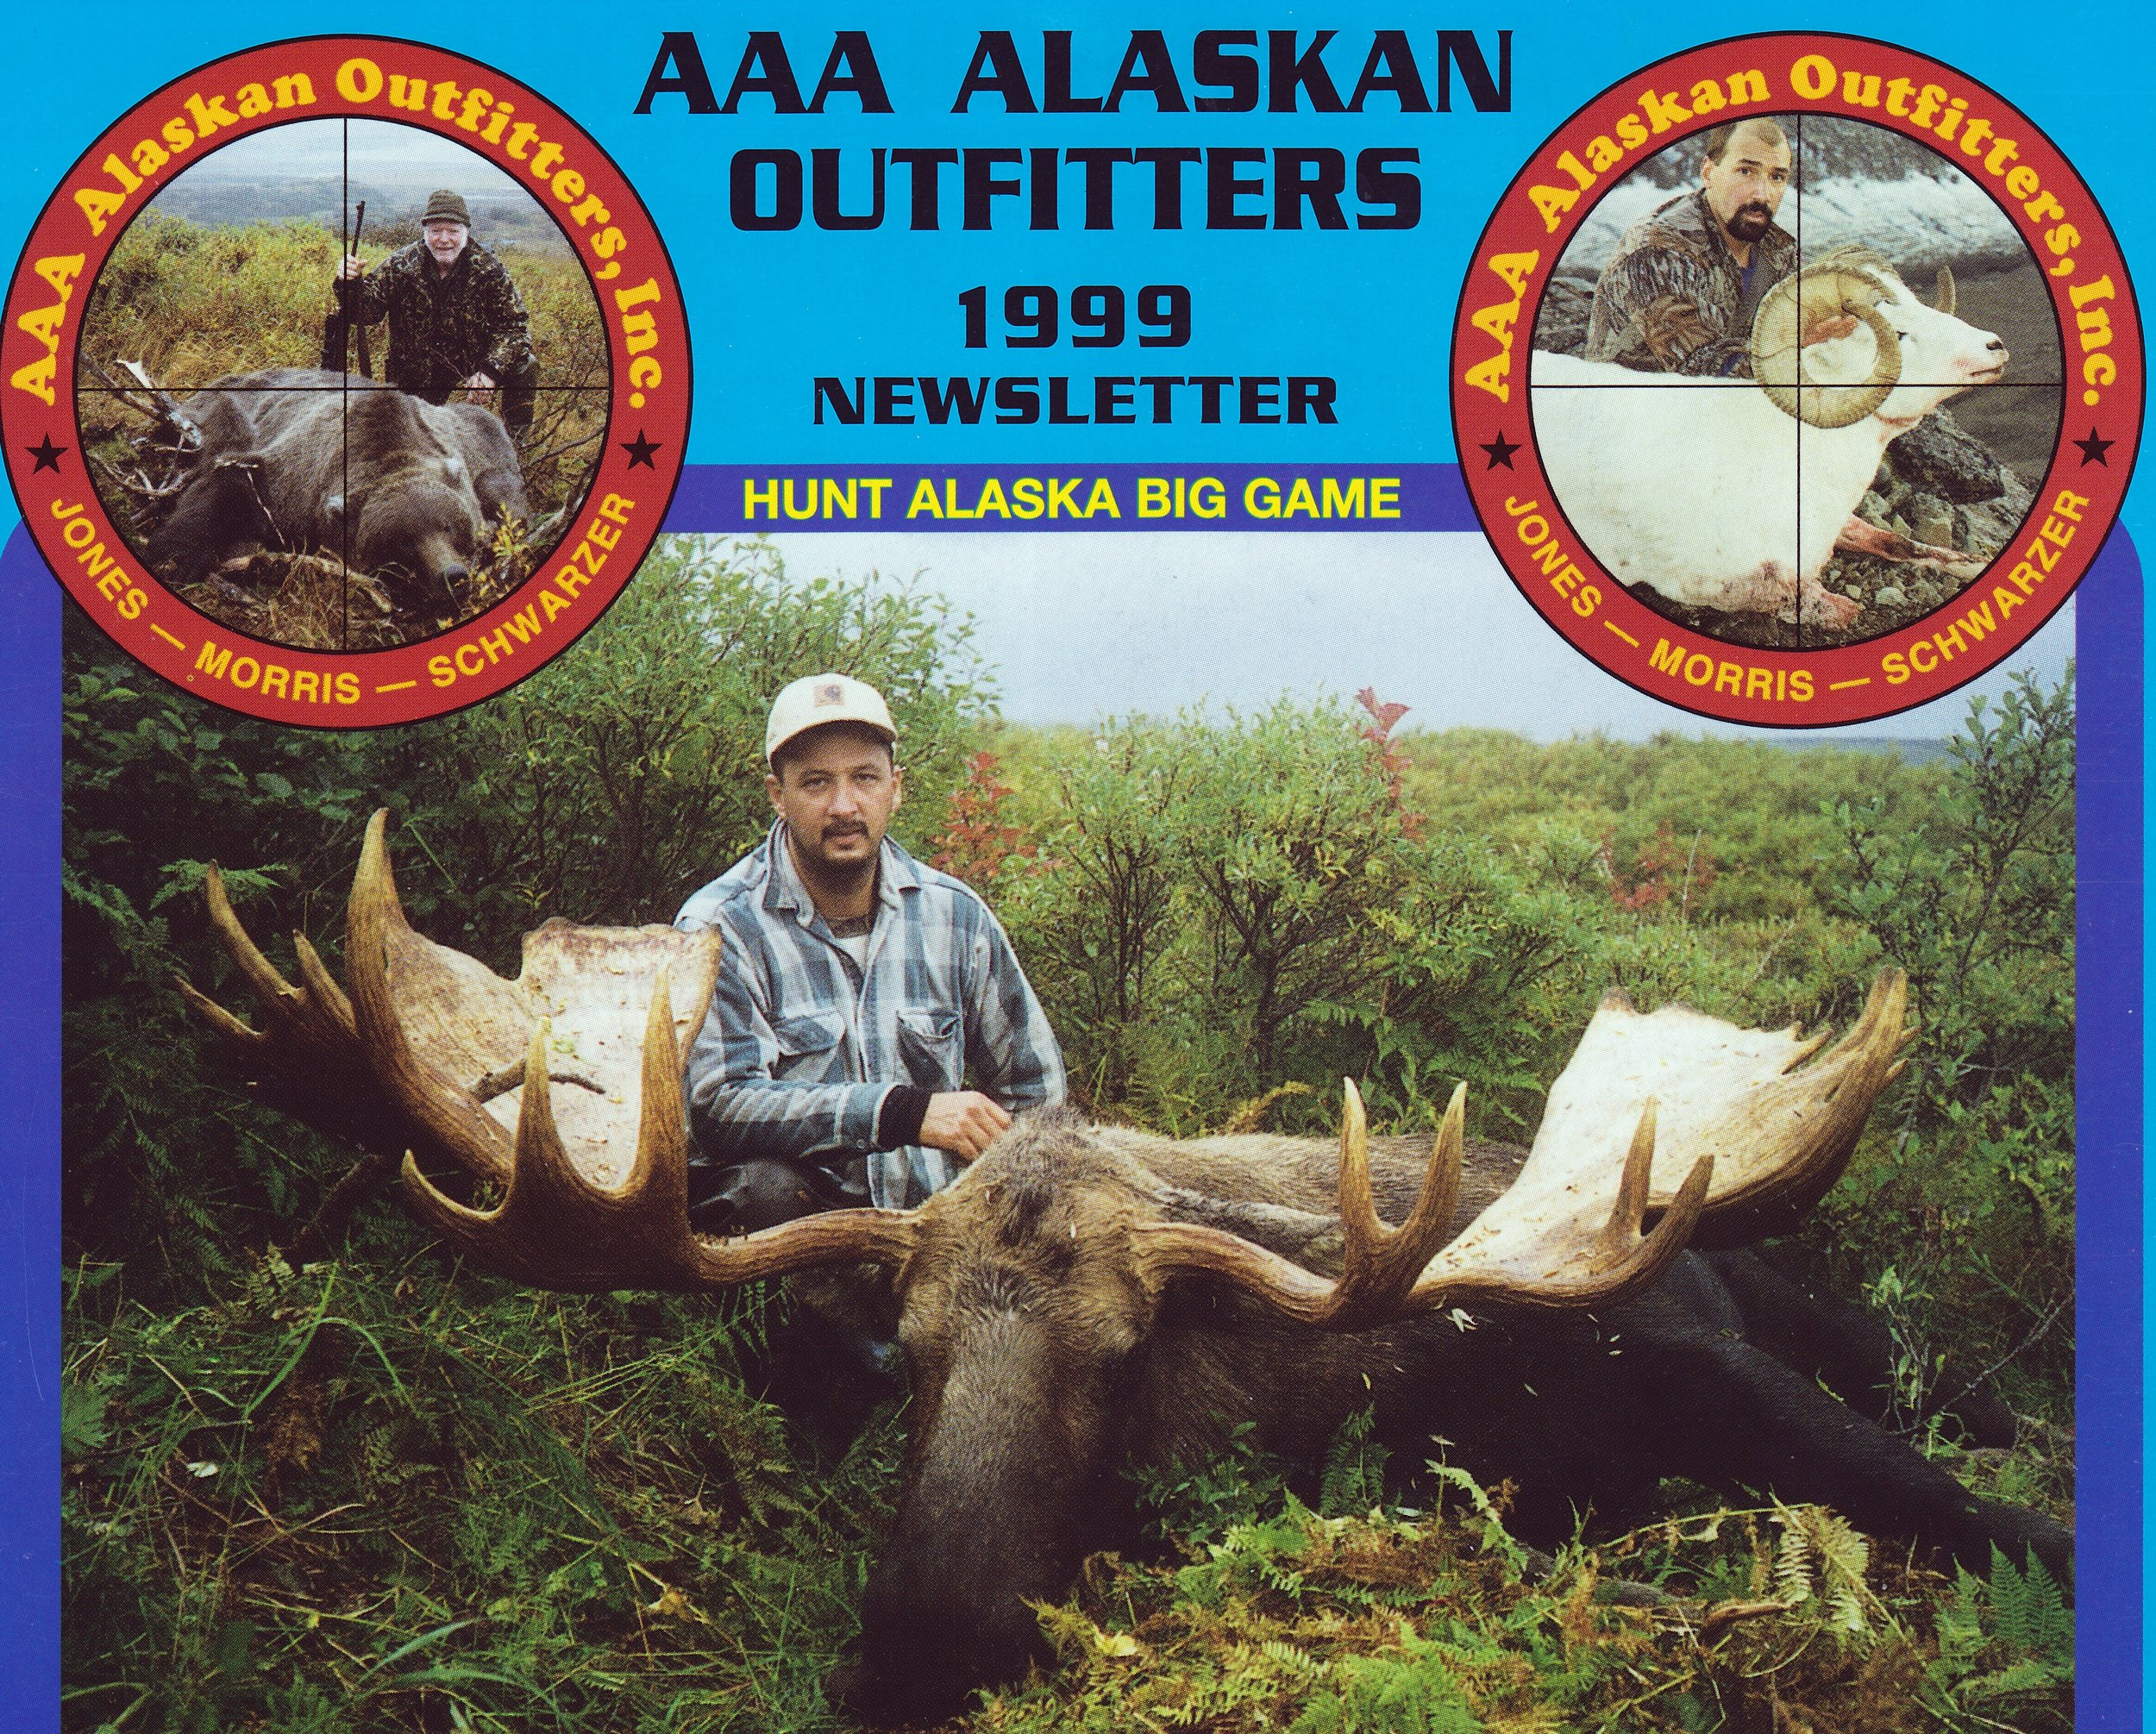 """Eric Payne, Maryland, with his 73 7/8"""" moose. This was AAA's largest moose taken in '99 and is still the biggest spread moose taken by AAA. It was taken in the Dog Salmon area on the Alaska Peninsula. Eric's guide was Willis Thayer. This is the cover of our annual newsletter. We featured three of our largest animals on the cover. The cross-hairs always had our largest bear and ram in the center."""